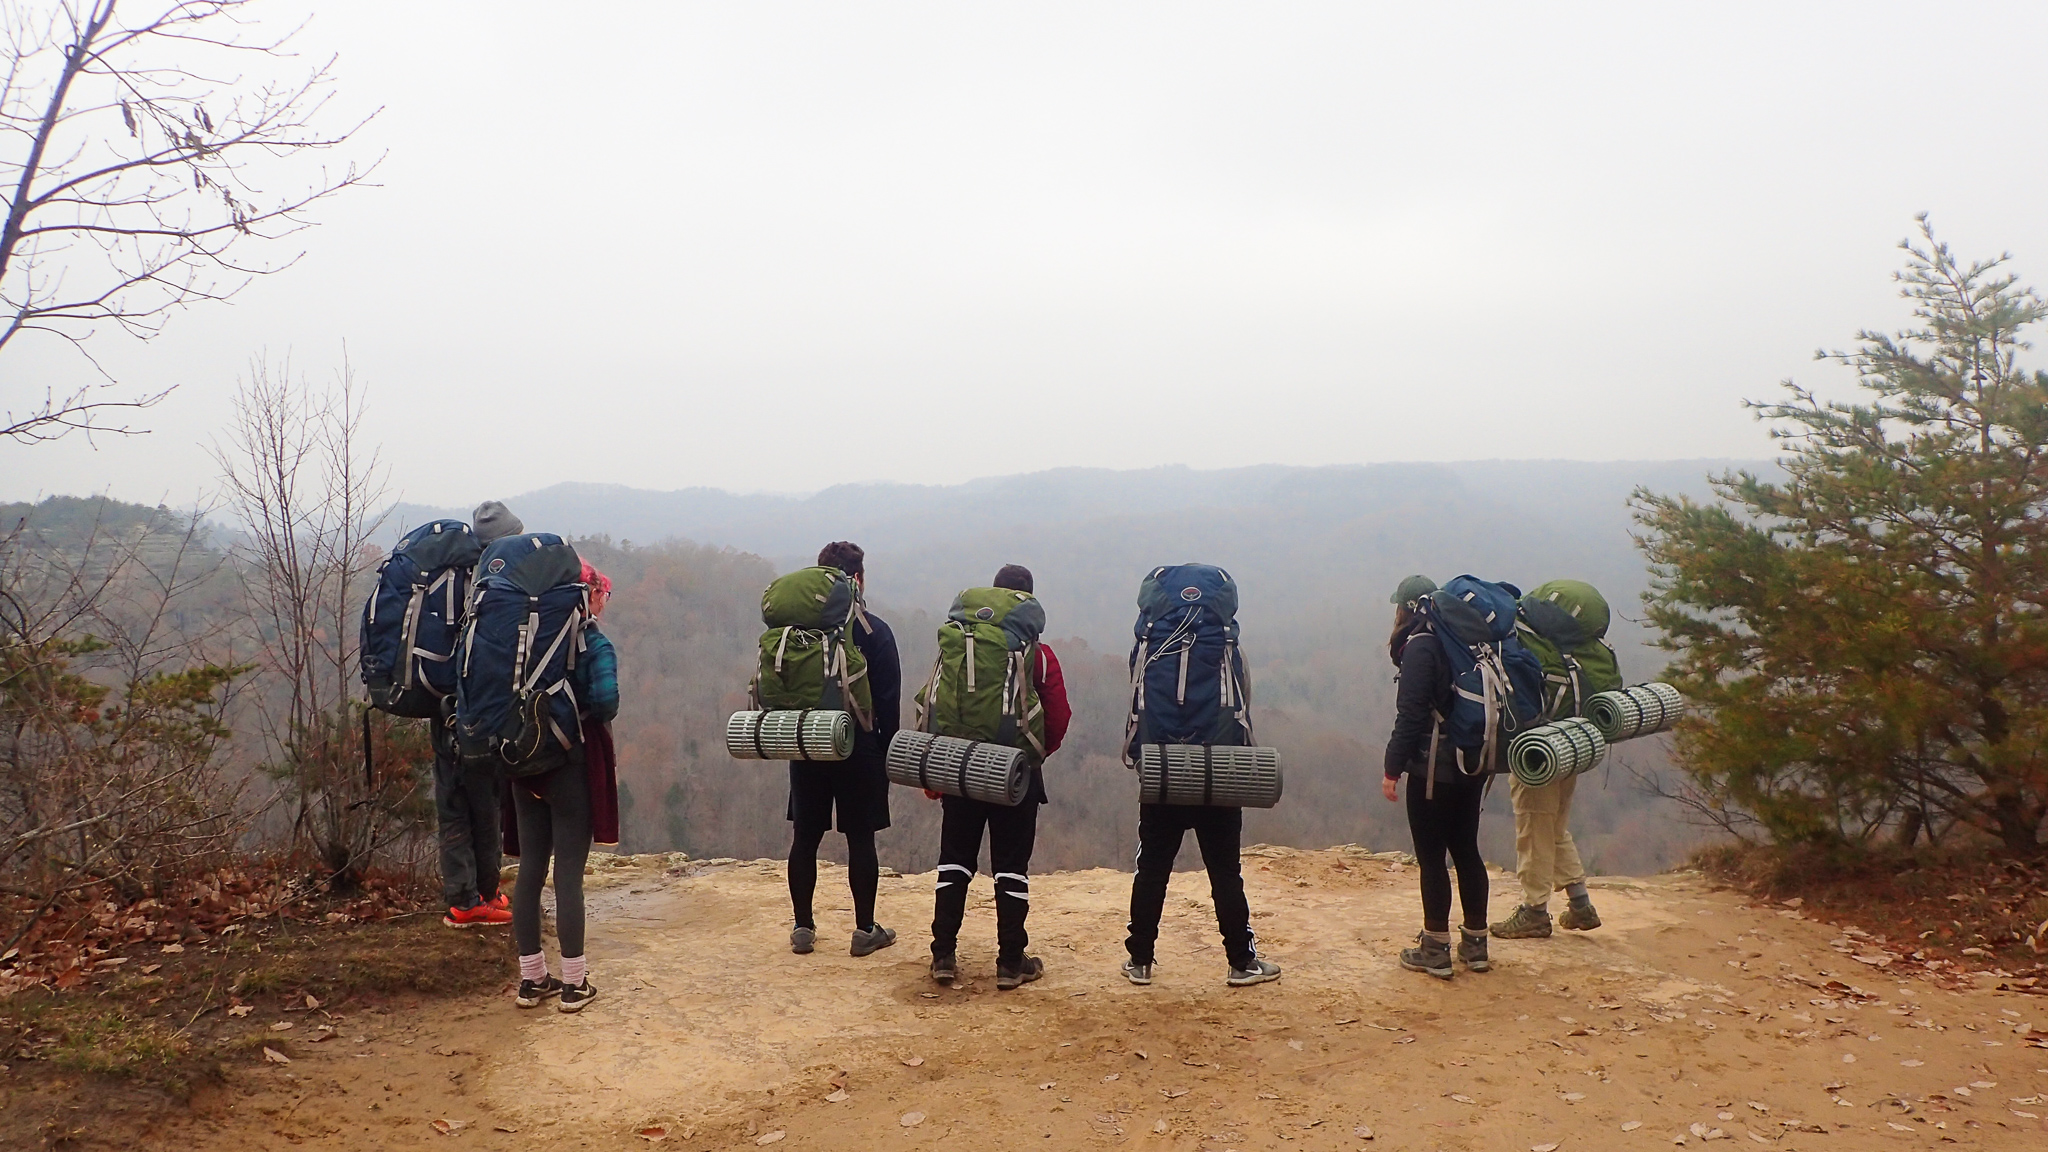 Students backpacking looking at a view from a mountain